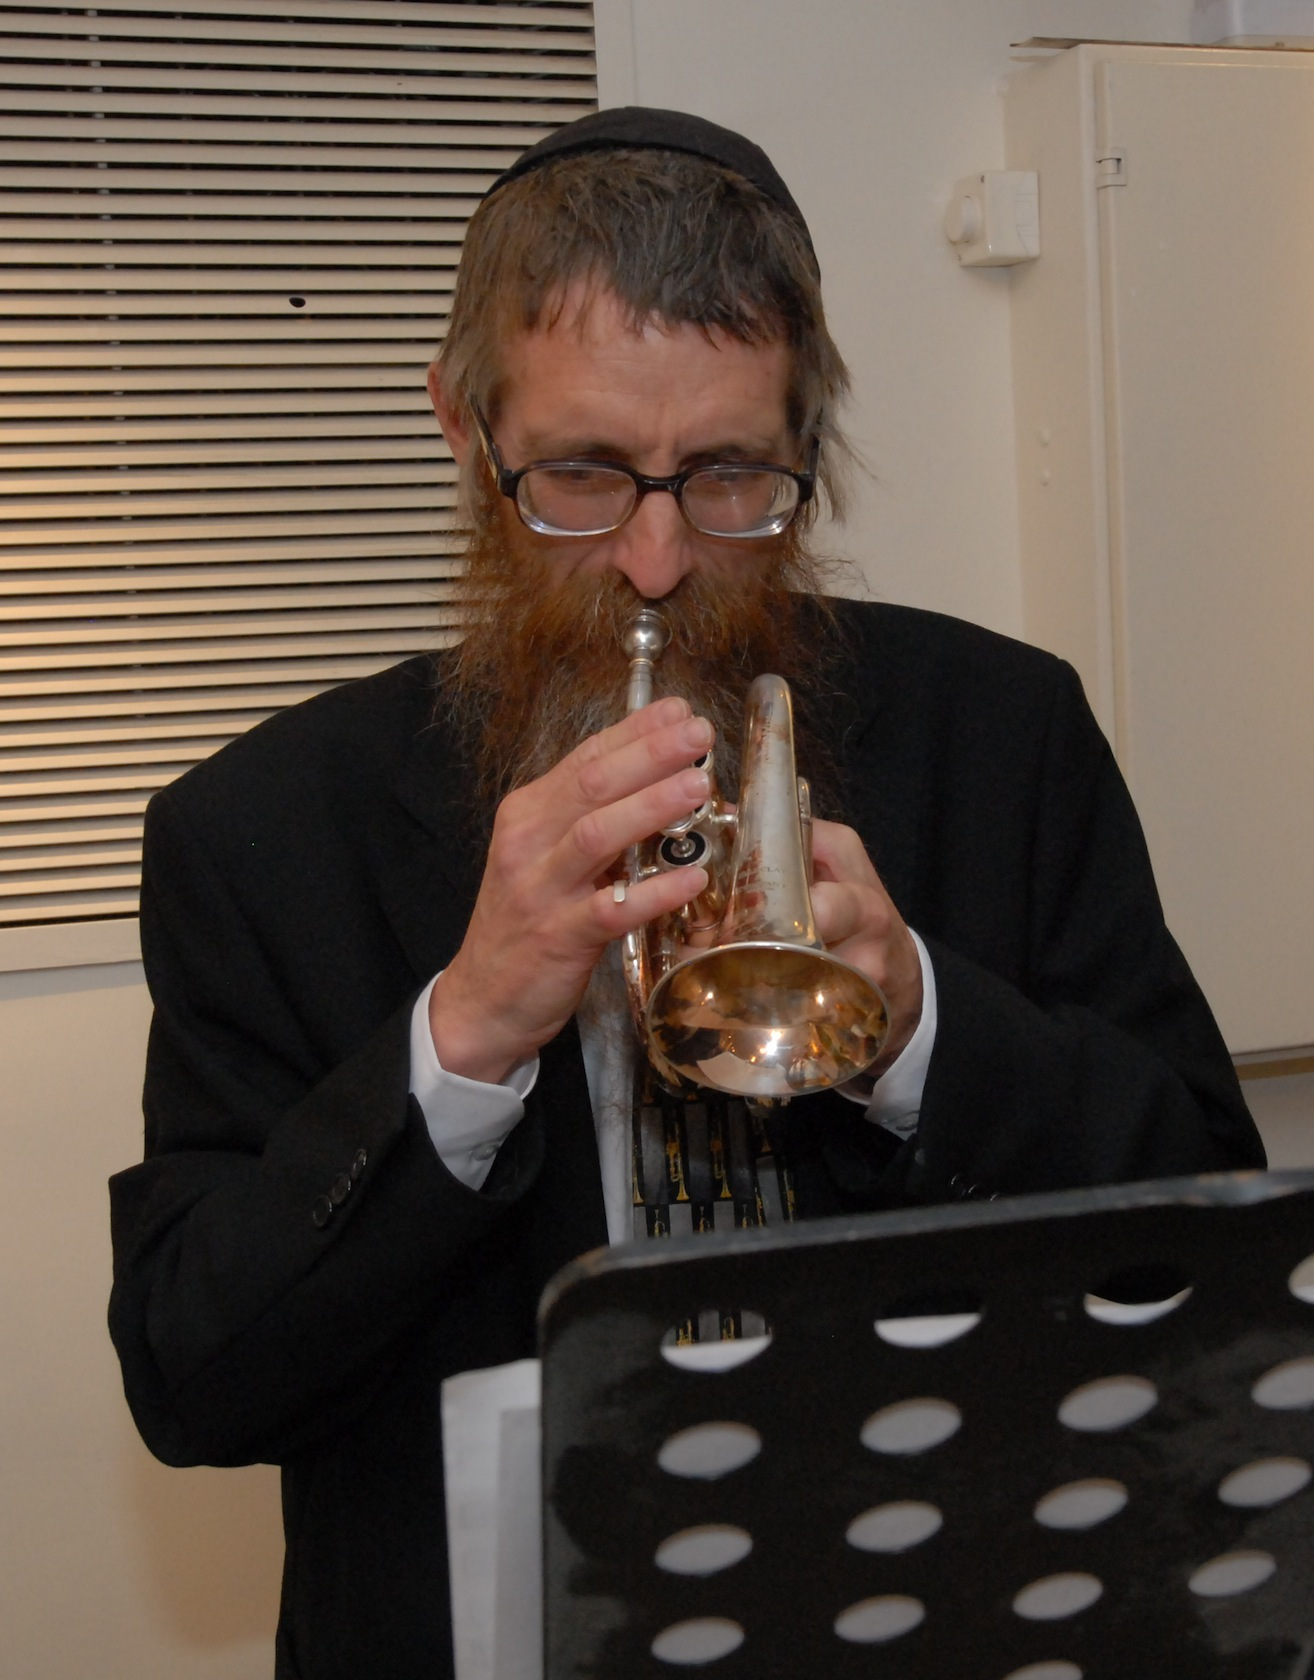 Playing trumpet at our wedding